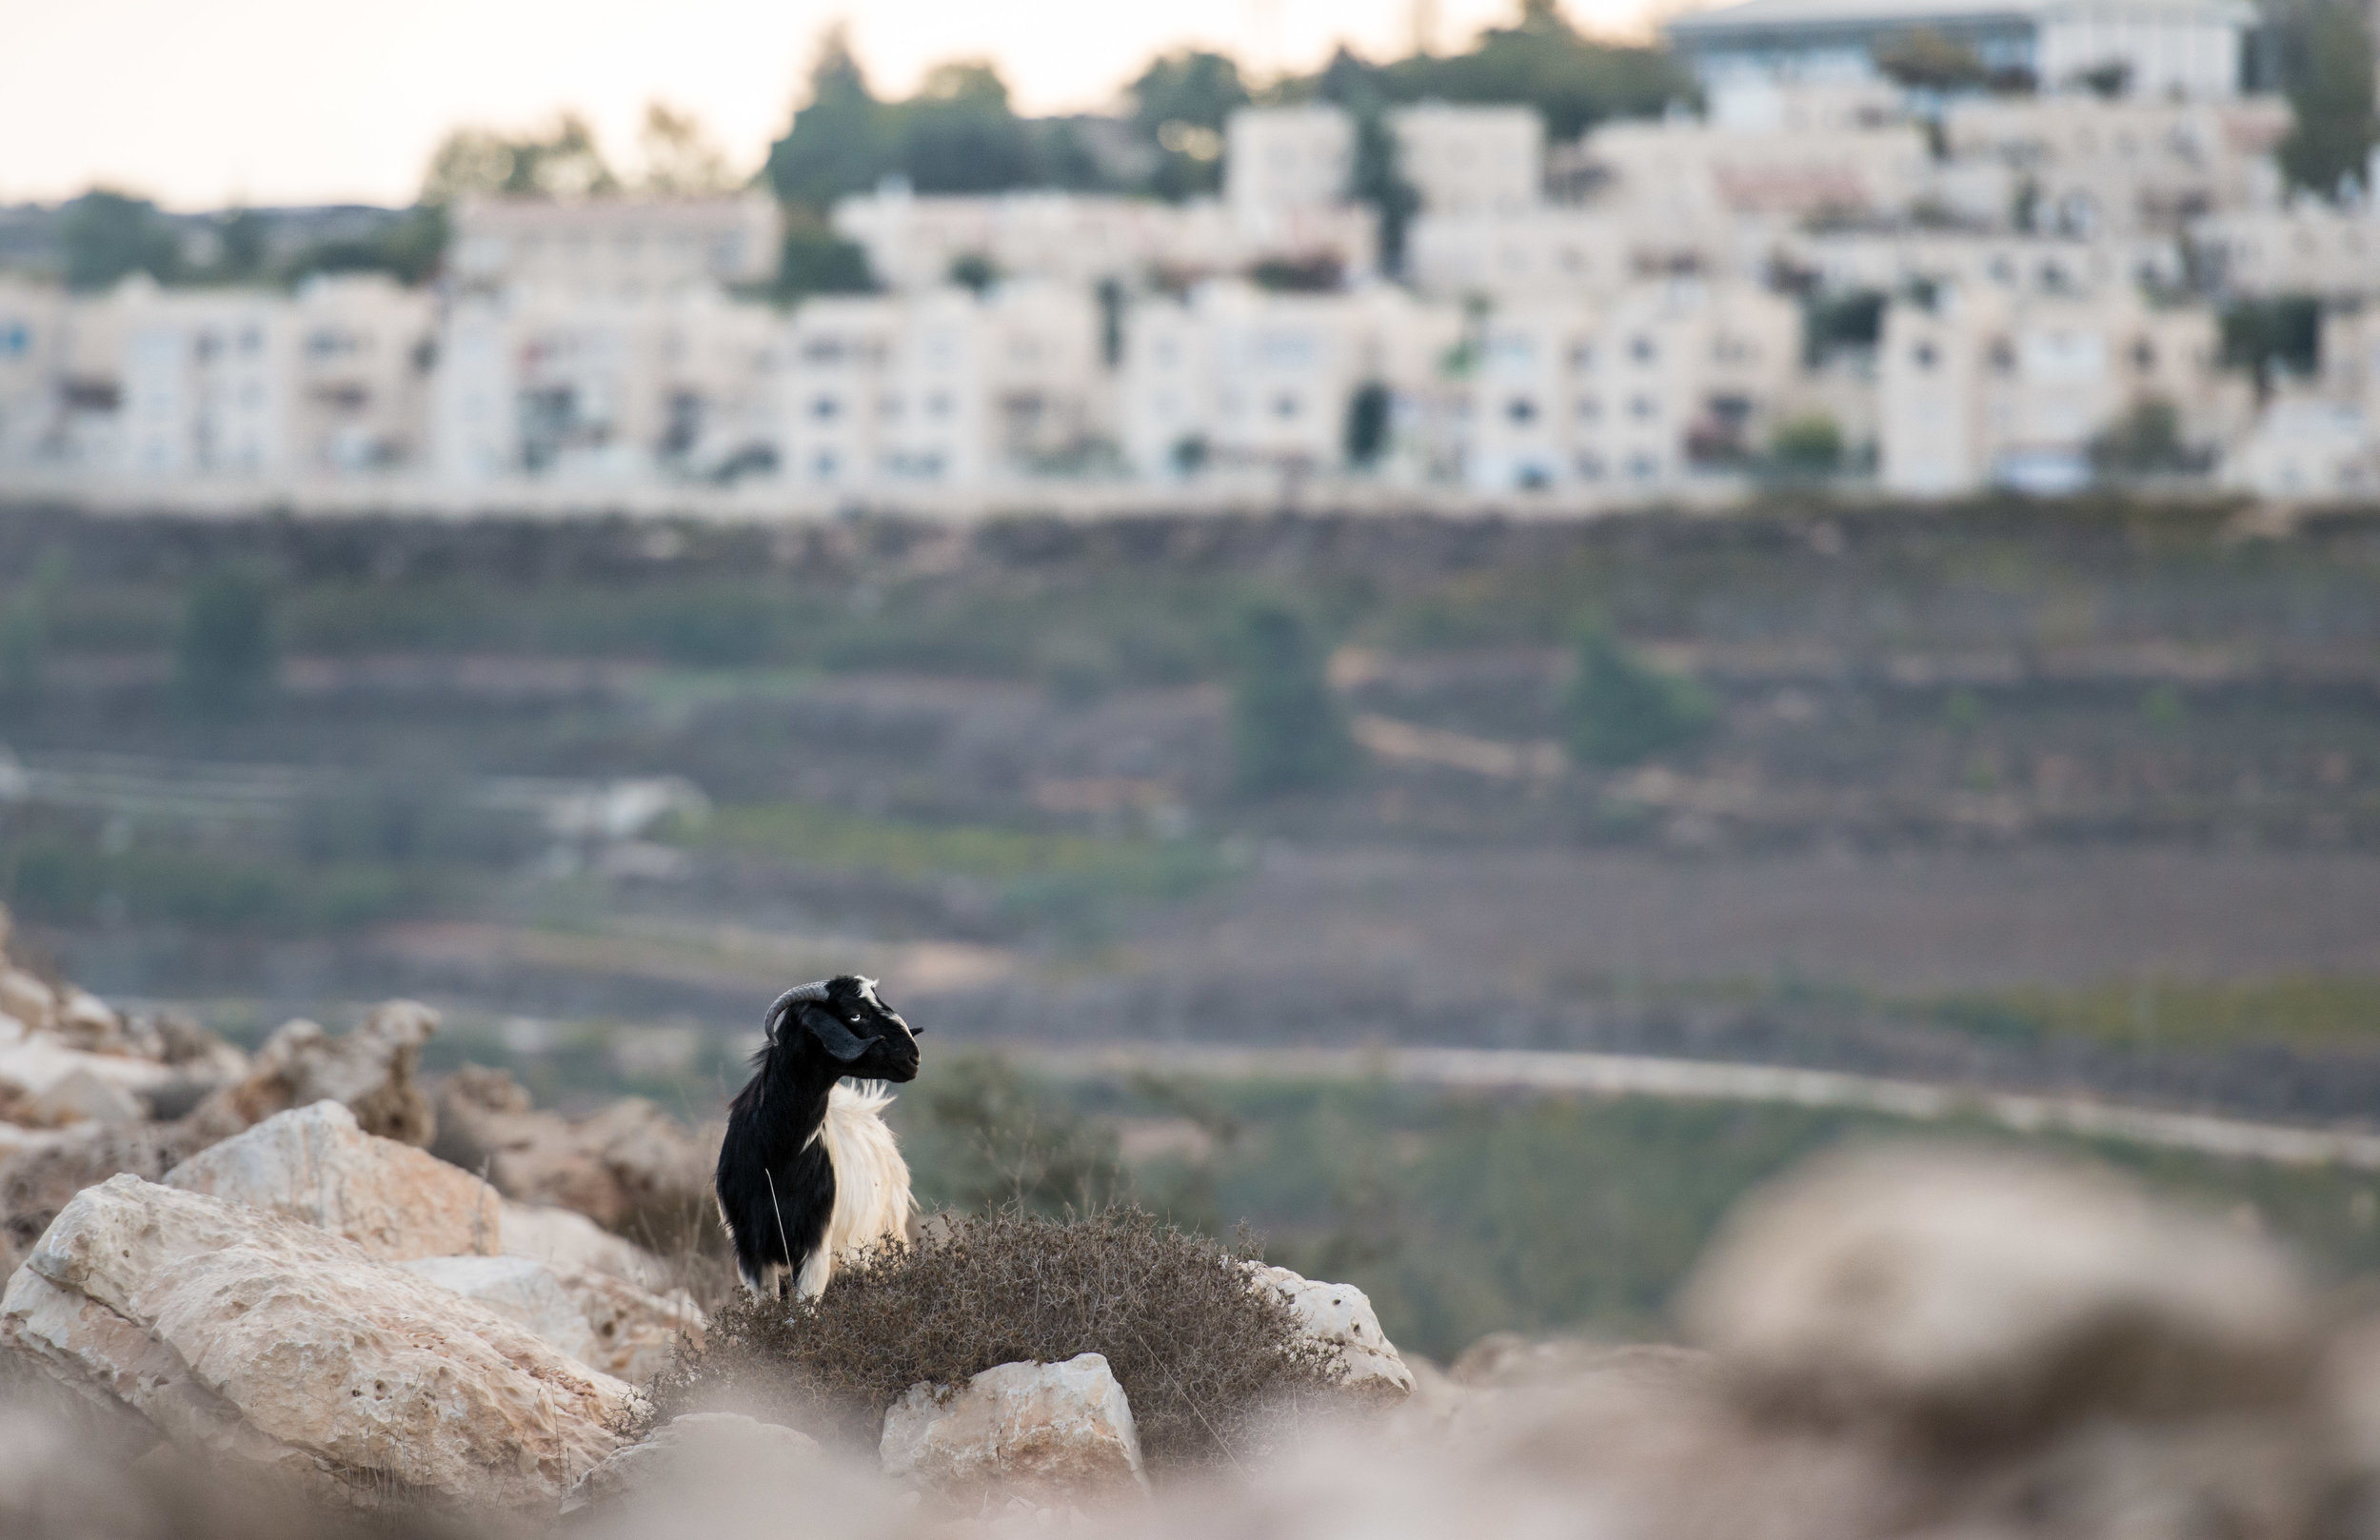 A goat stands amidst boulders at the entrance to Tent of Nations as settlements line the valley's edge in the distance.  West Bank, Palestine